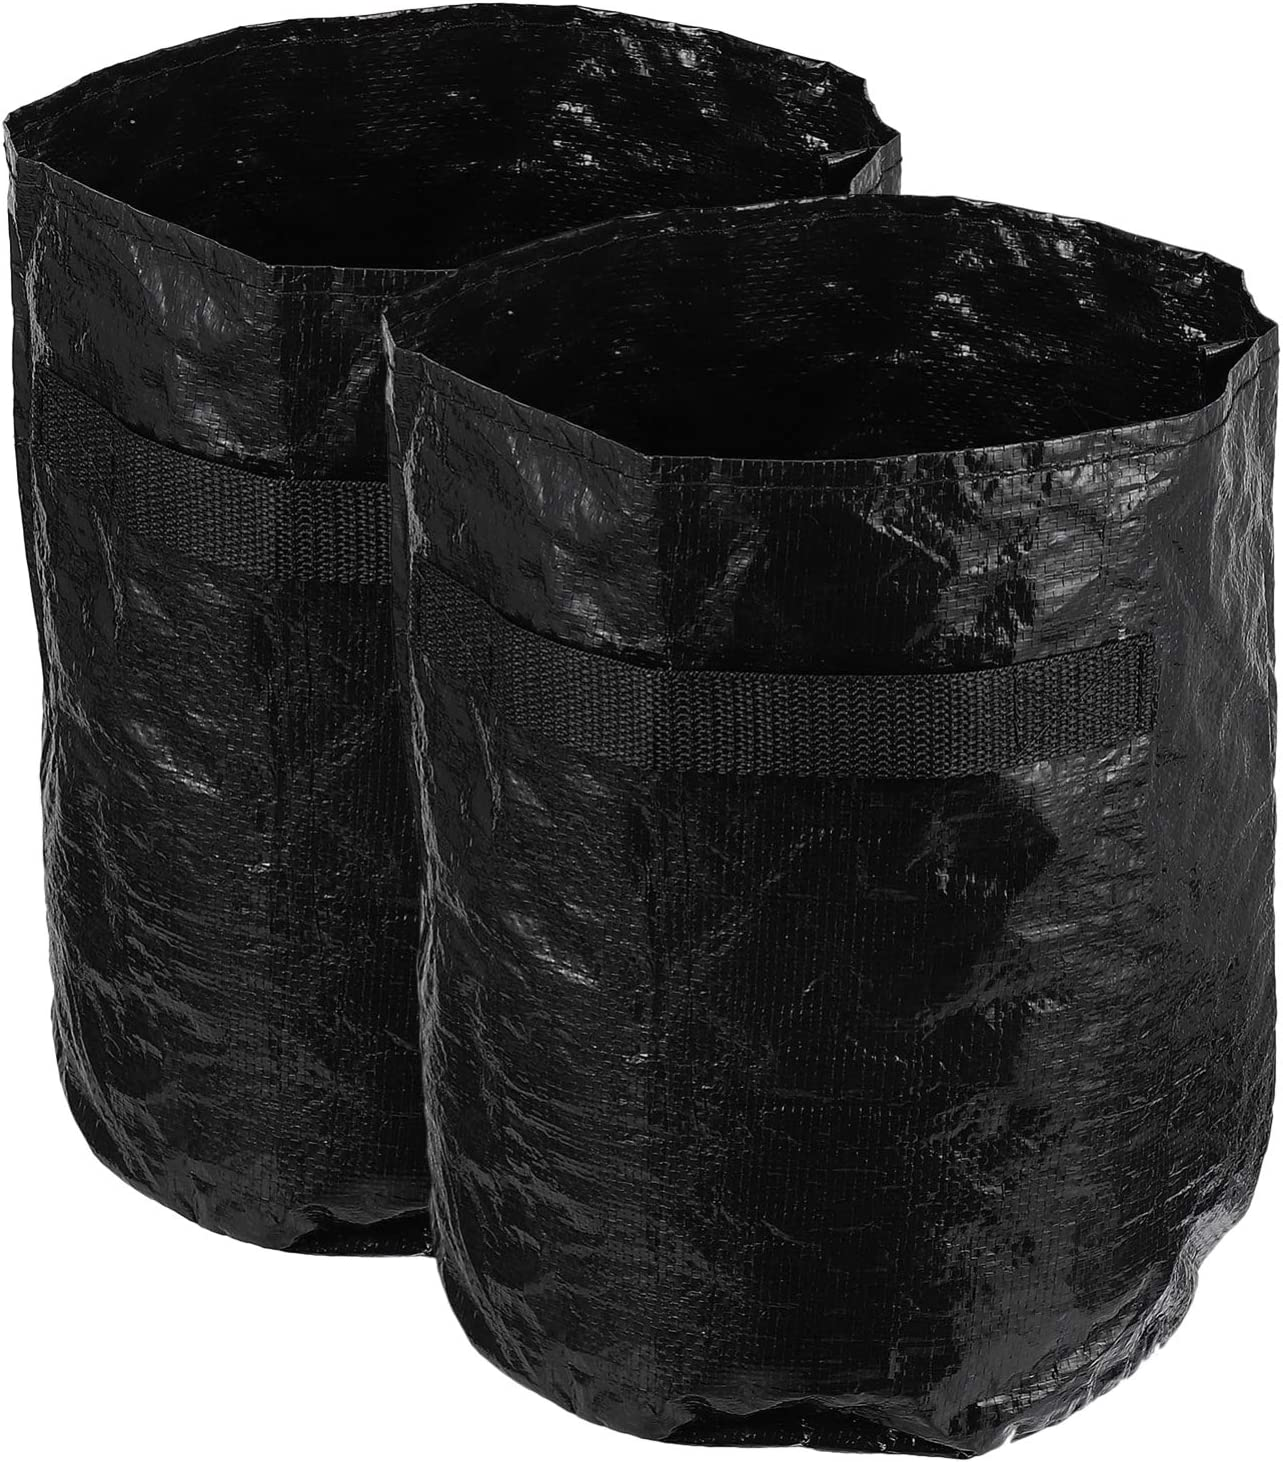 Yardwe 2pcs Excellent Reusable Garden Waste Yard Leaf Large Inexpensive Bags with